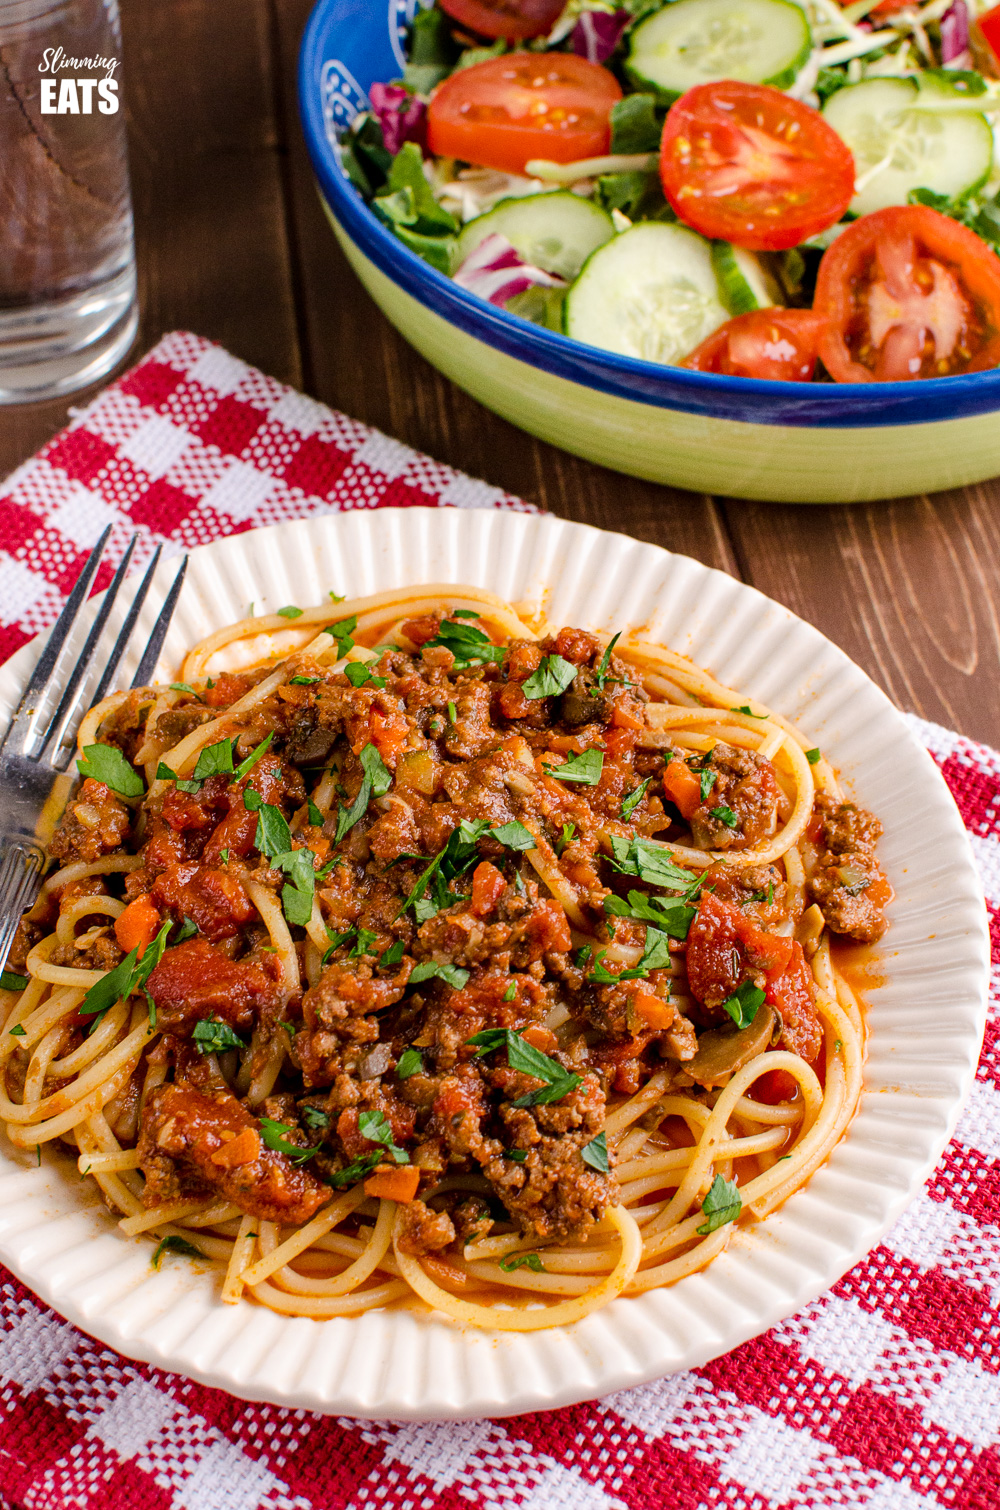 bolognese on spaghetti pasta on white ridged plate on red checked fabric with salad and water in background